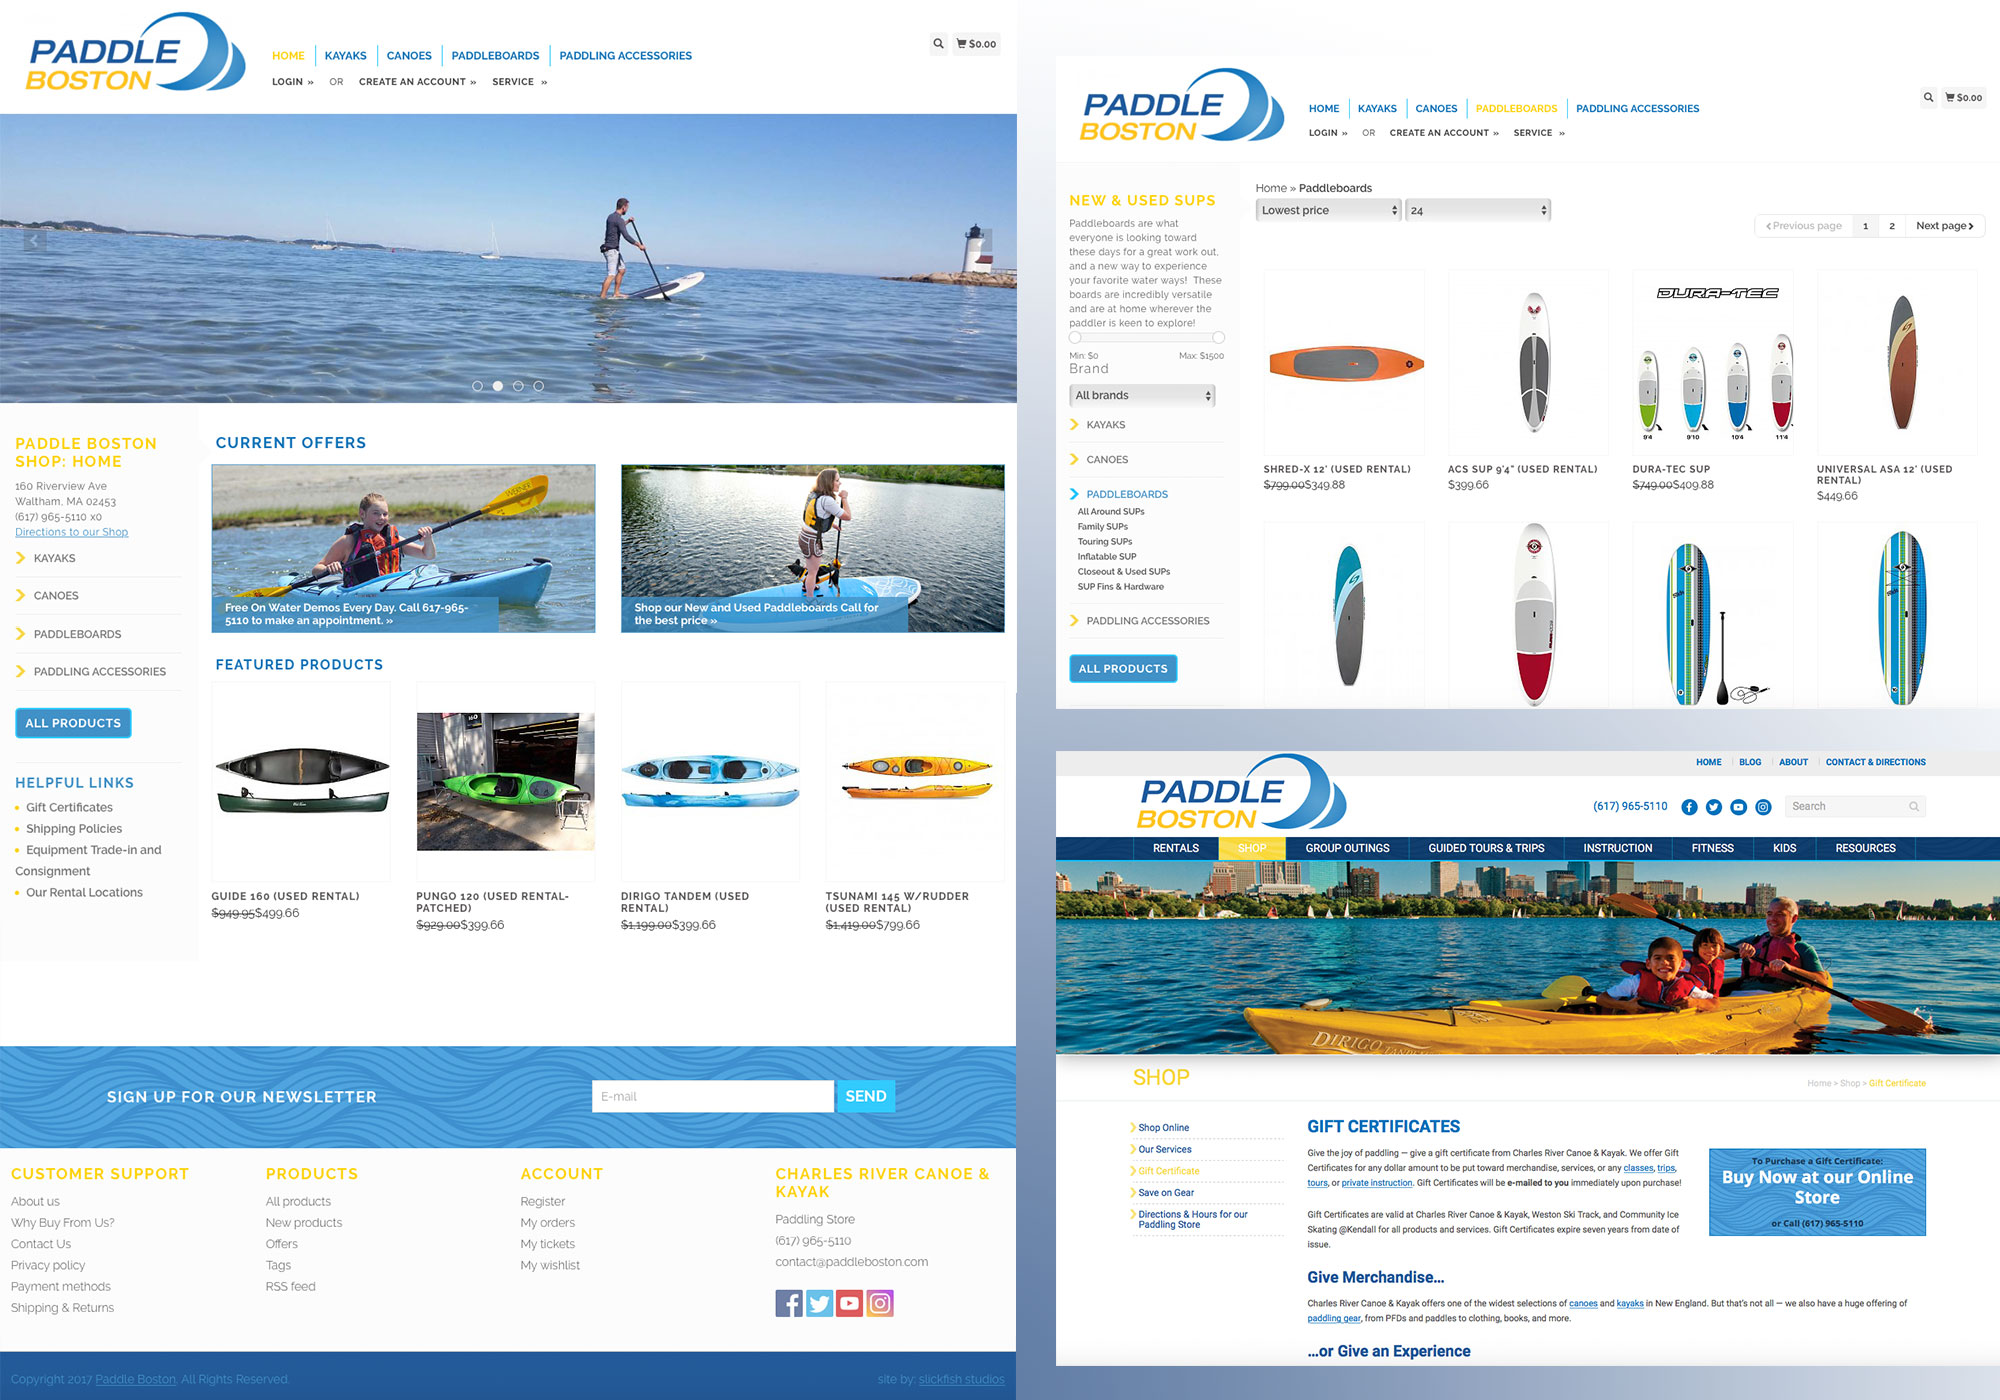 Maine web design company, SlickFish Studios customized an online store for Paddle Boston/Charles River Canoe and Kayak using the Lightspeed software.